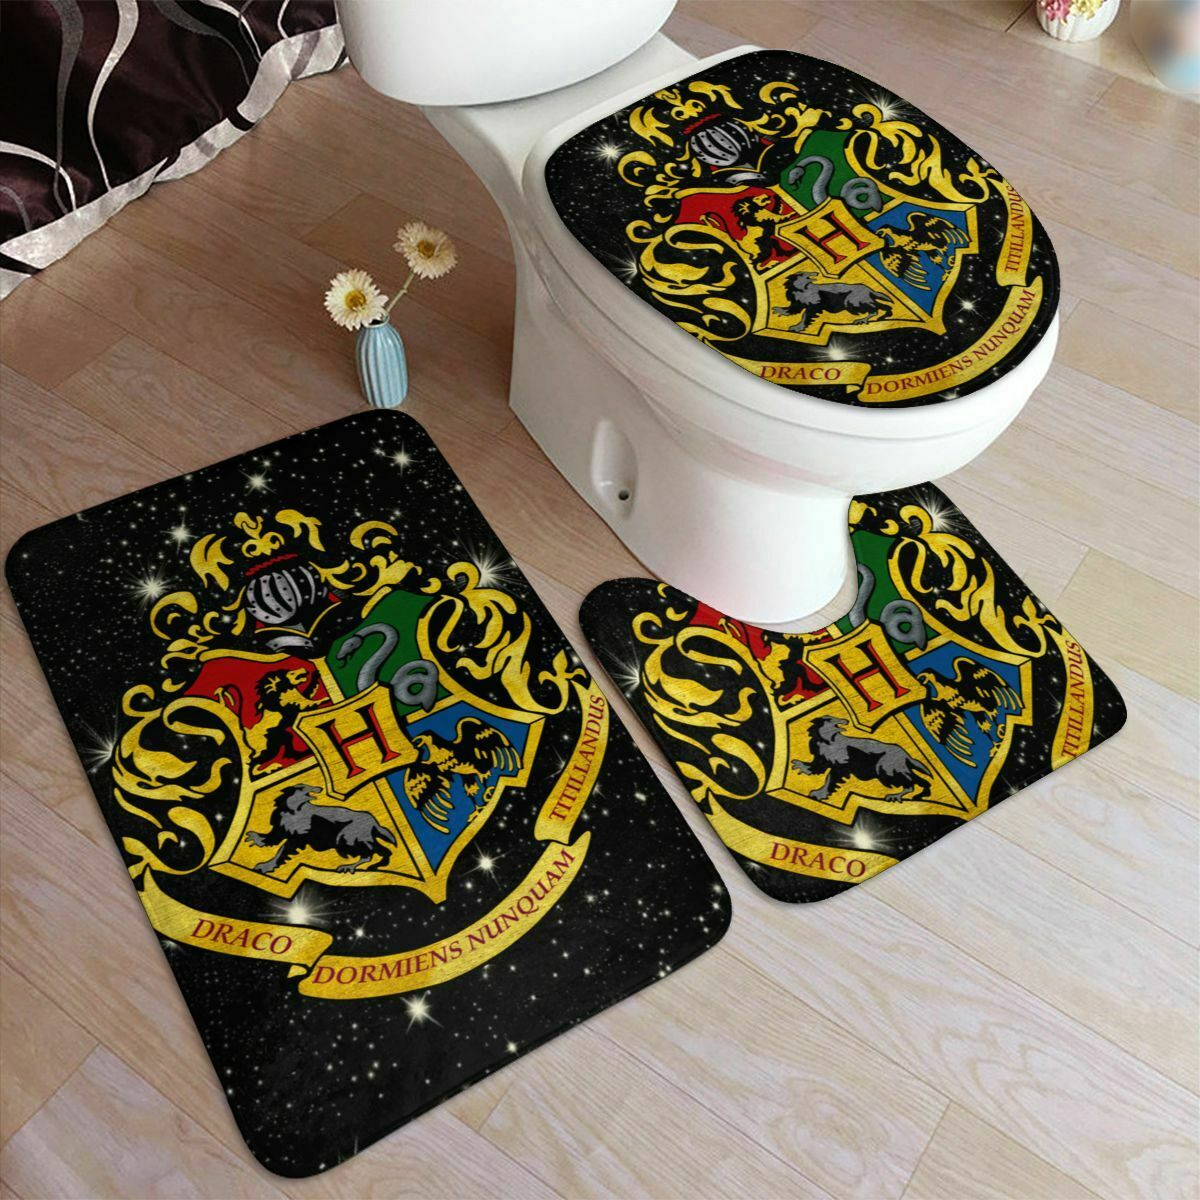 S 3 Harry Potter Anti Slip Bath Mat Pedestal Rug Toilet Seat Cover Kids Bathroom Ebay